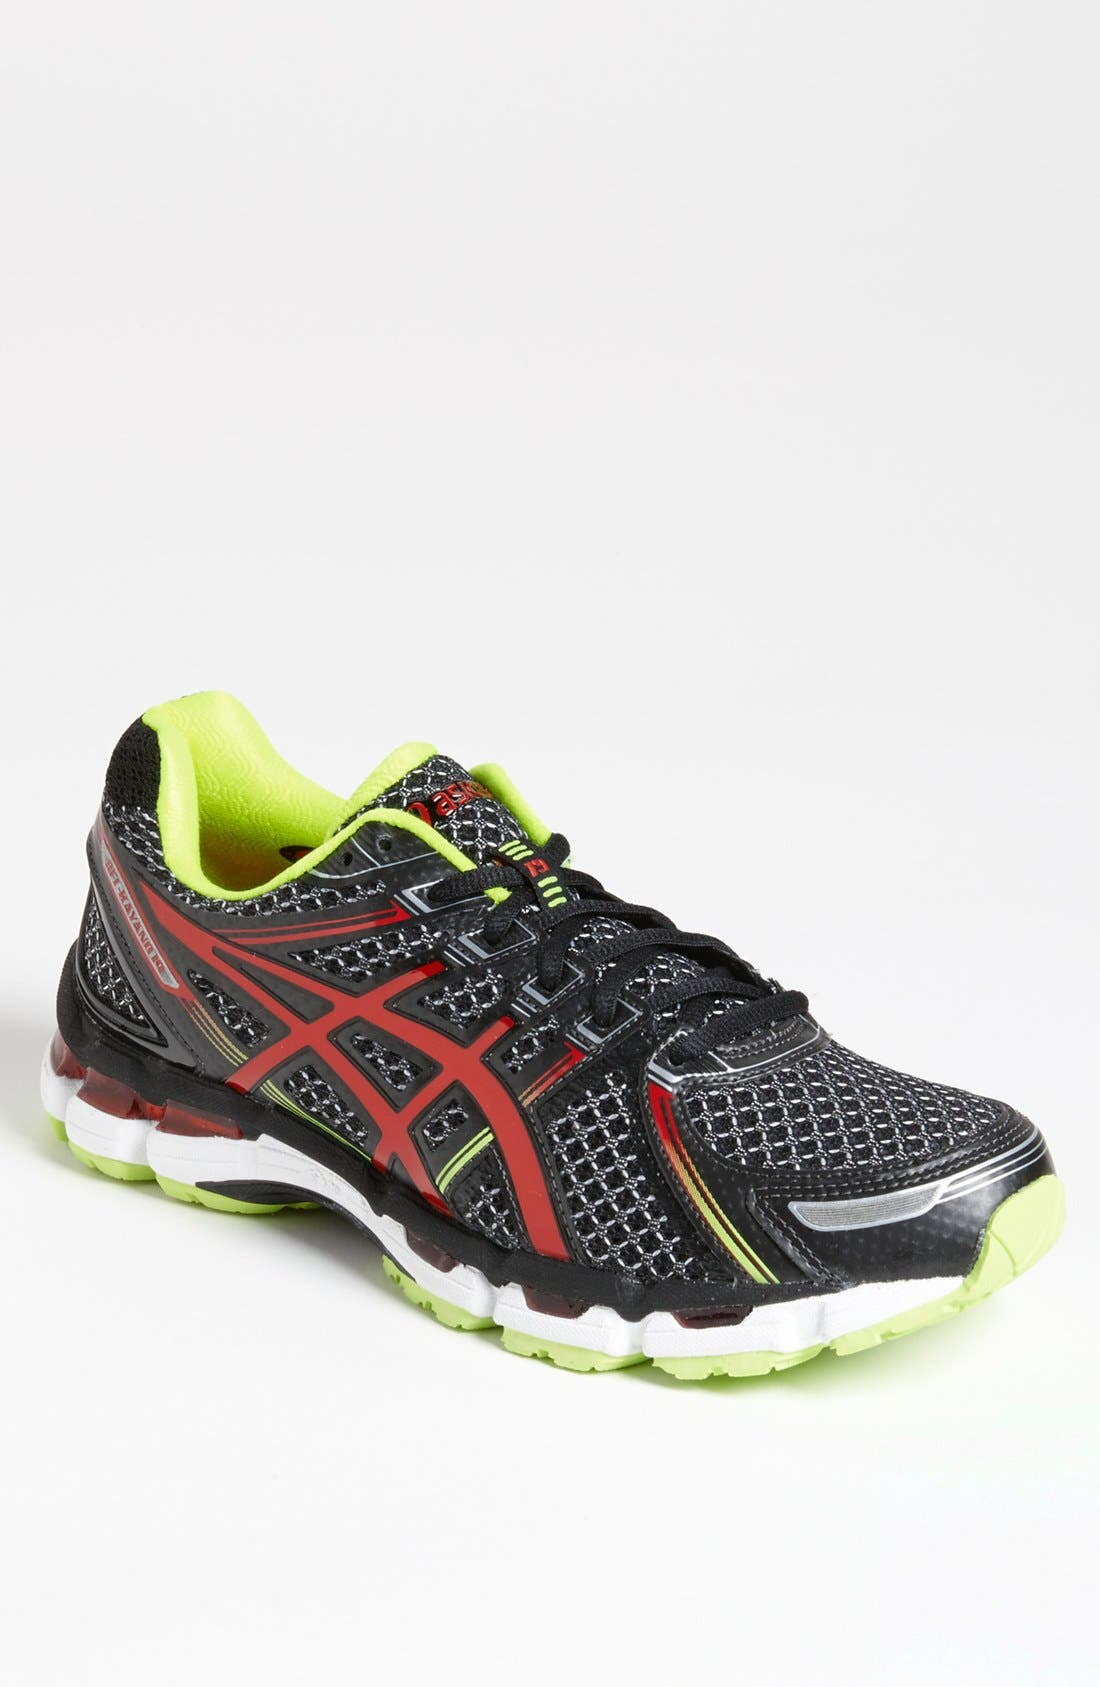 Main Image - ASICS® 'GEL-Kayano® 19' Running Shoe (Men) (Online Only) (Regular Retail Price: $144.95)